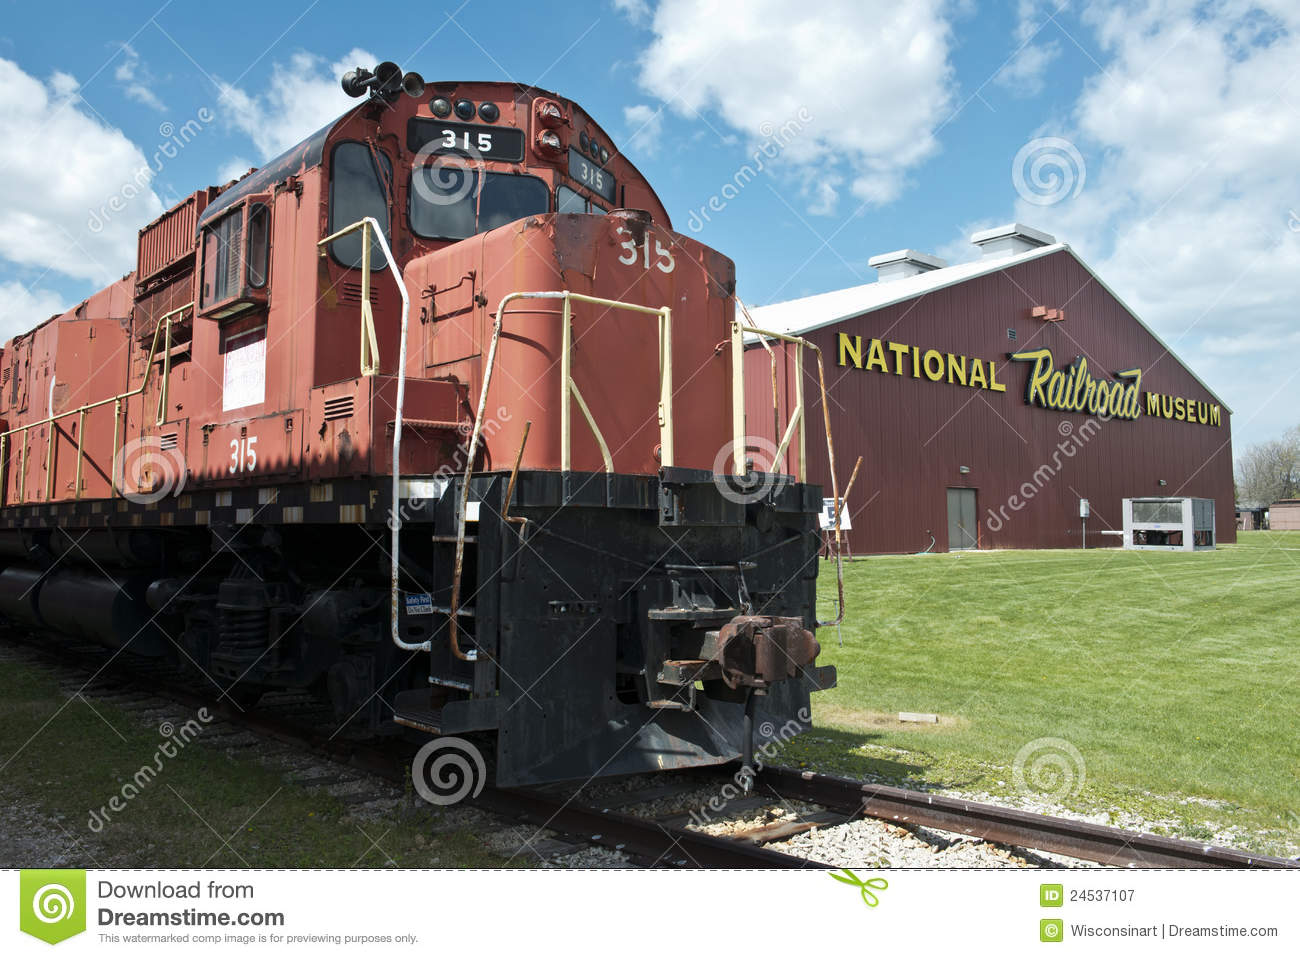 National Railroad Museum >> National Railroad Museum Travel To Green Bay Wi Editorial